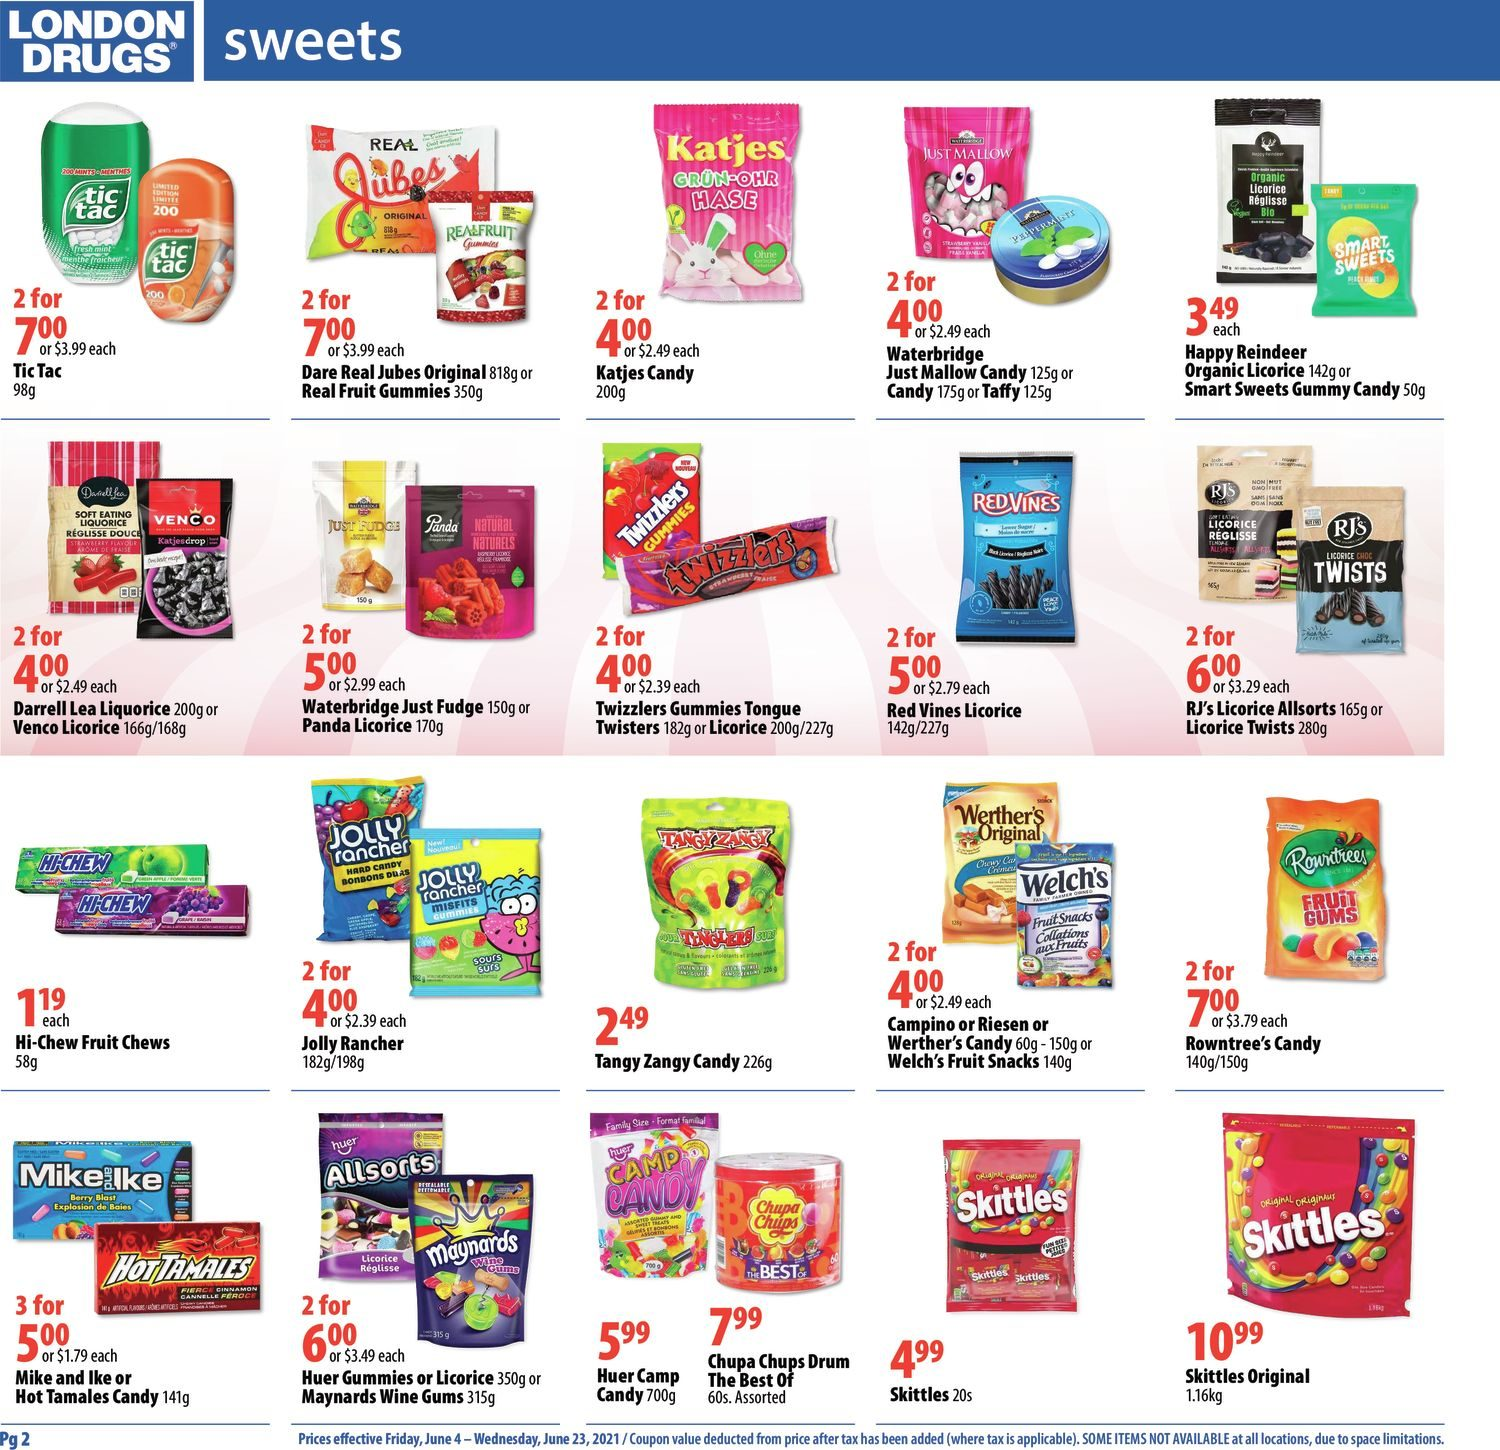 London Drugs - Sweets & Snacks - Page 2